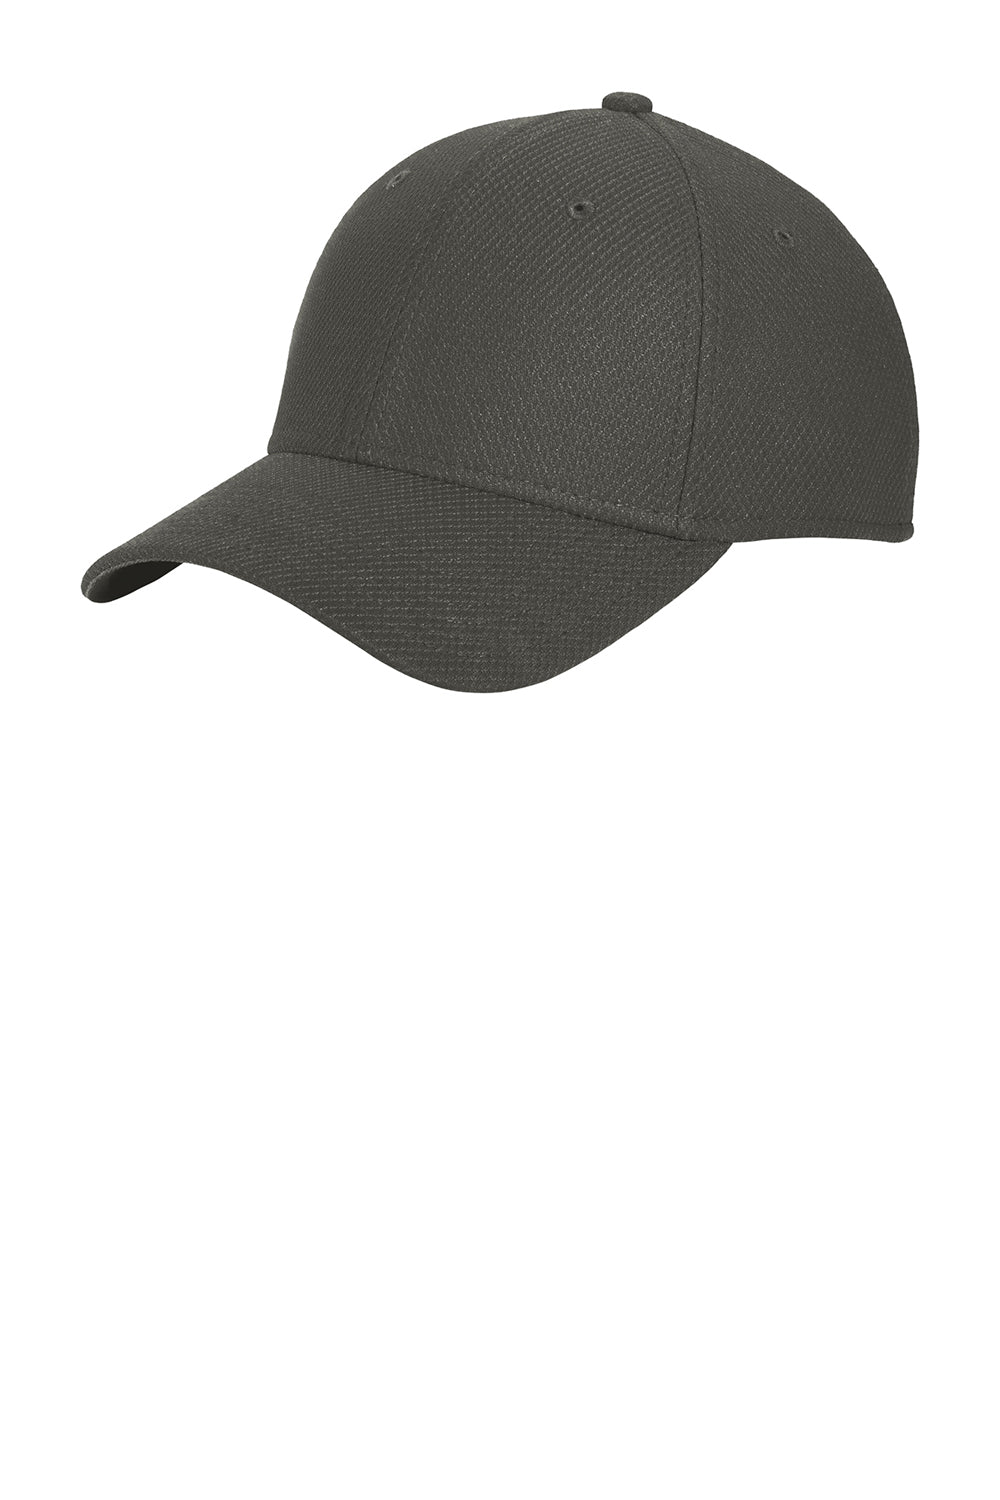 New Era NE1121 Mens Moisture Wicking Stretch Fit Hat Graphite Grey Front